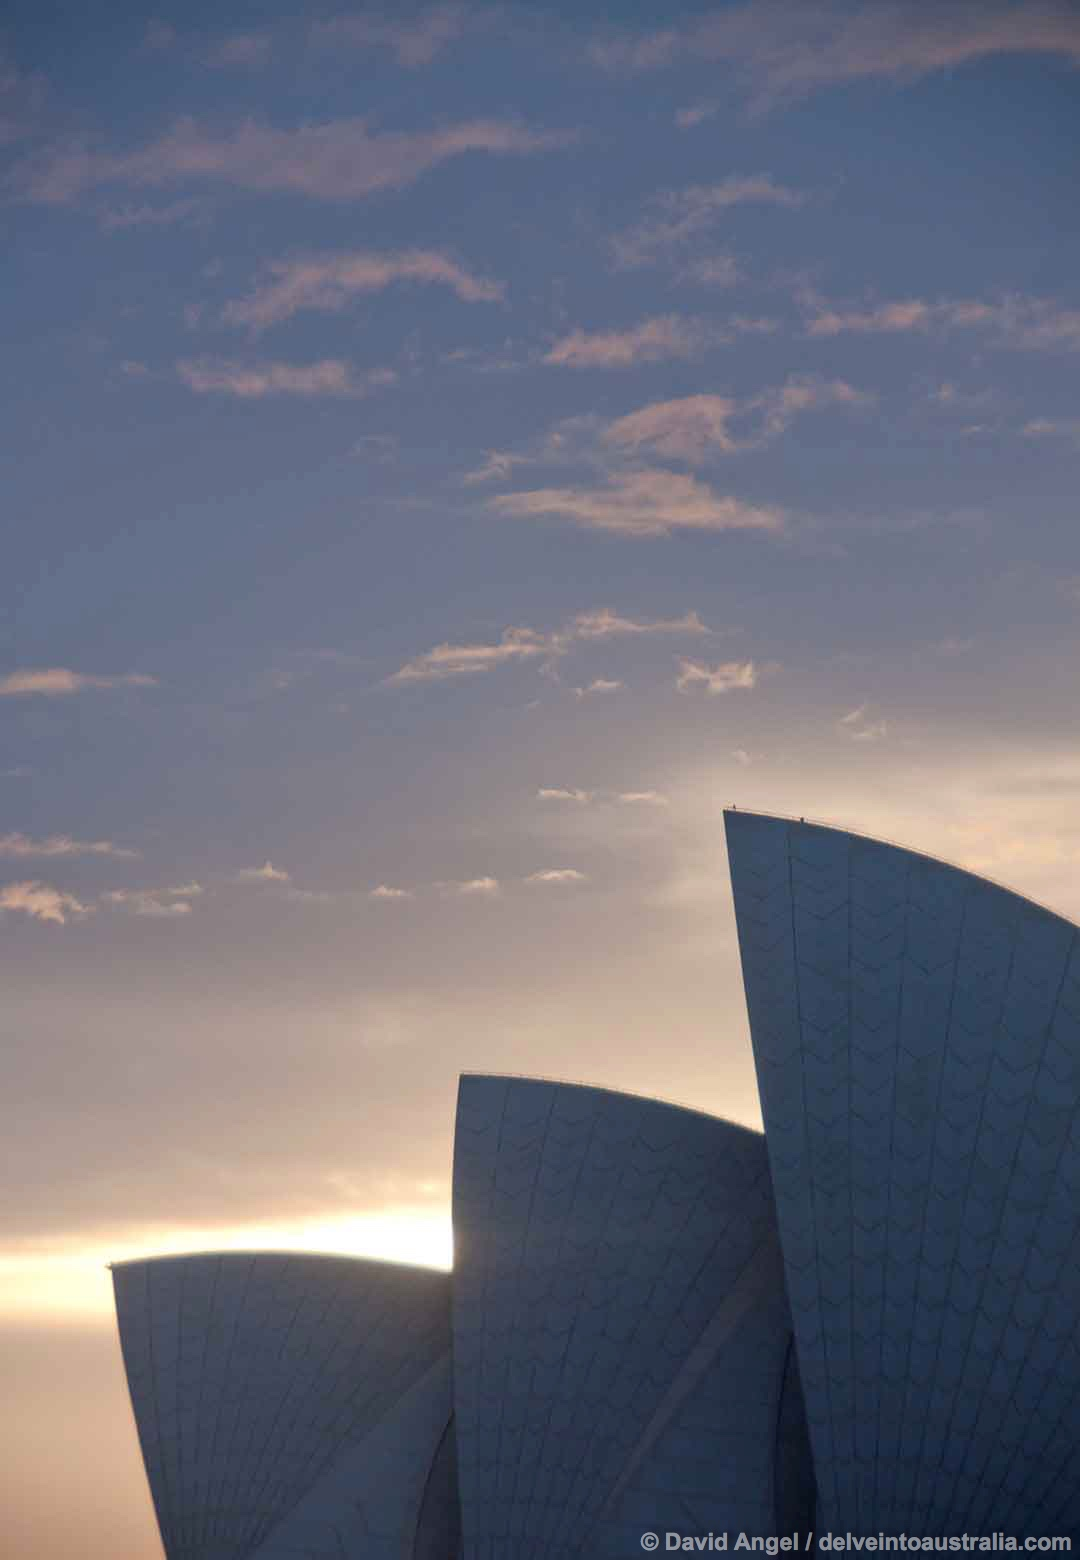 Image of Sydney Opera House at sunrise